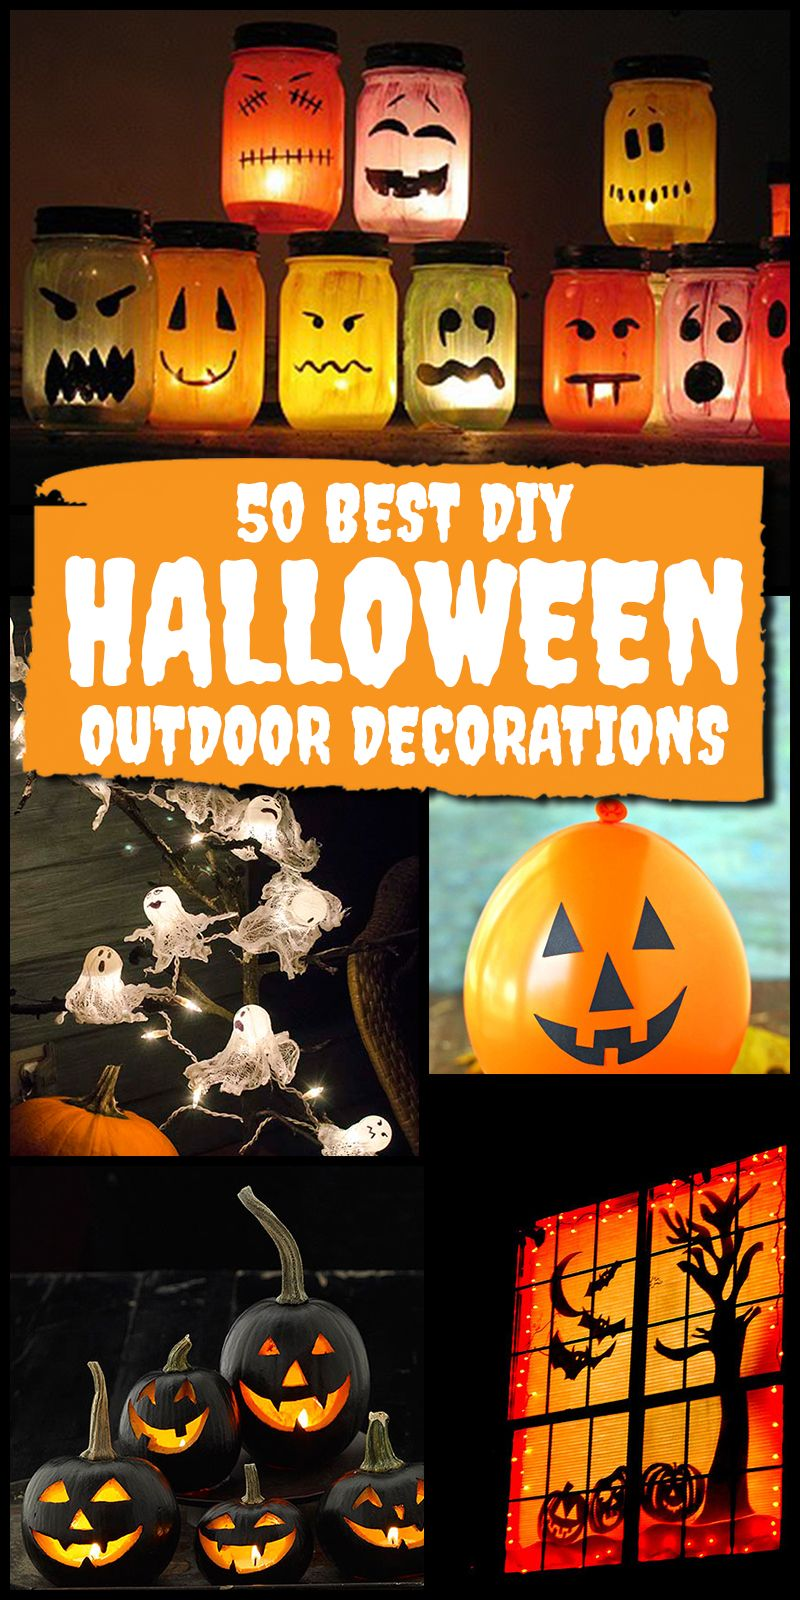 64 Best DIY Halloween Outdoor Decorations for 2018 👻 Pinterest - halloween decorations diy